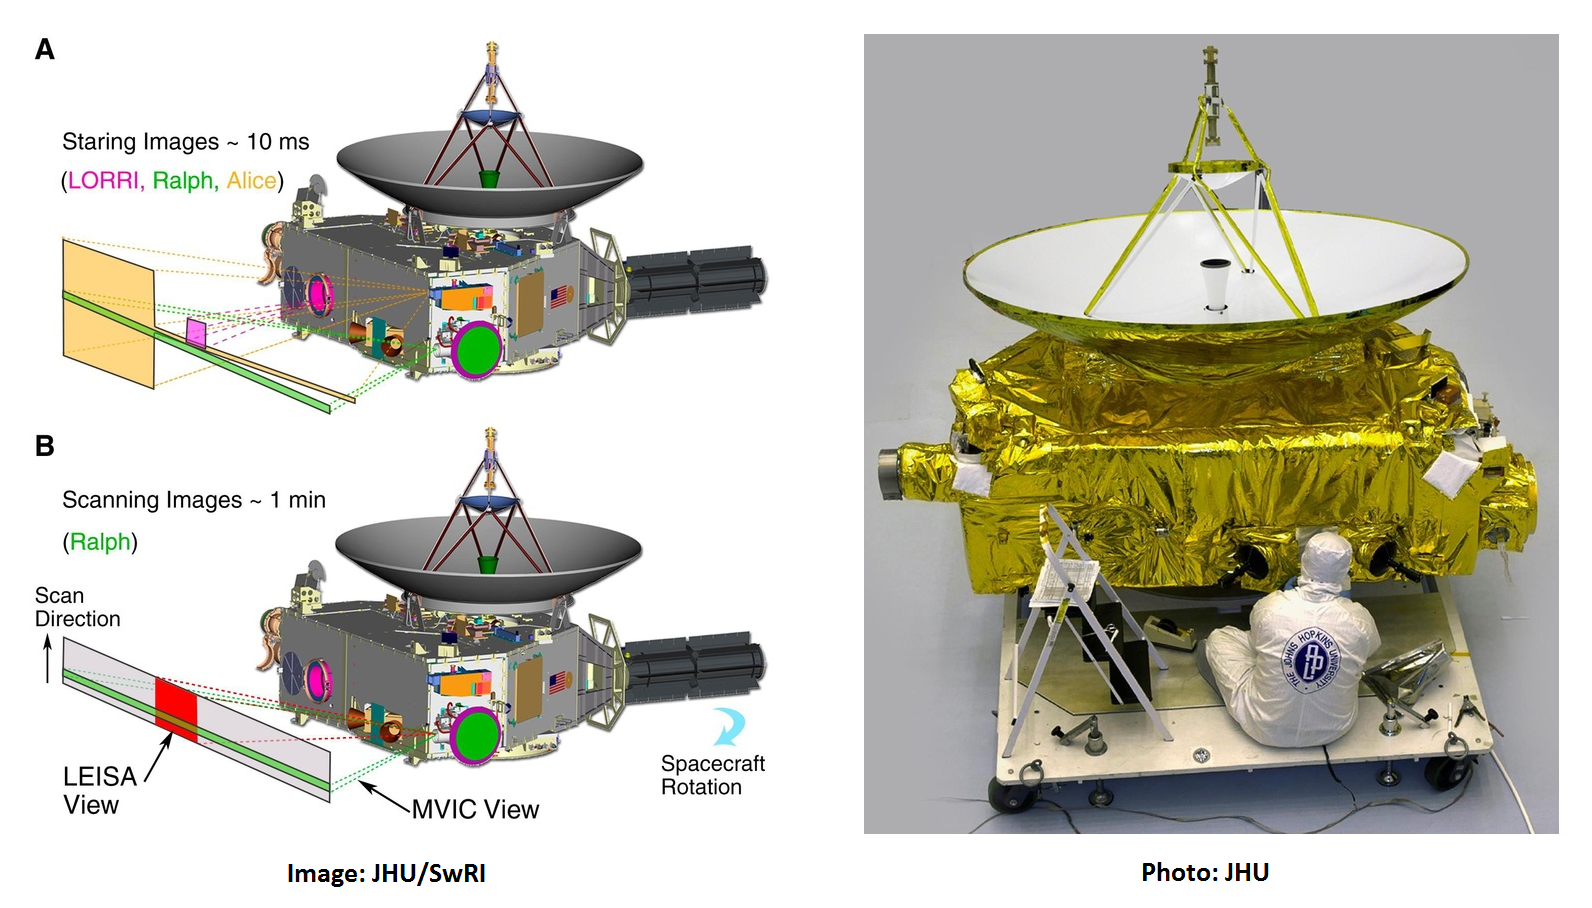 Instrument Overview New Horizons Labeled Diagram Of The Spacecraft Showing Location Boresights Ralph Lorri And Alice Airglow Channel Are Aligned With X Axis Allowing Them To Operate Simultaneously